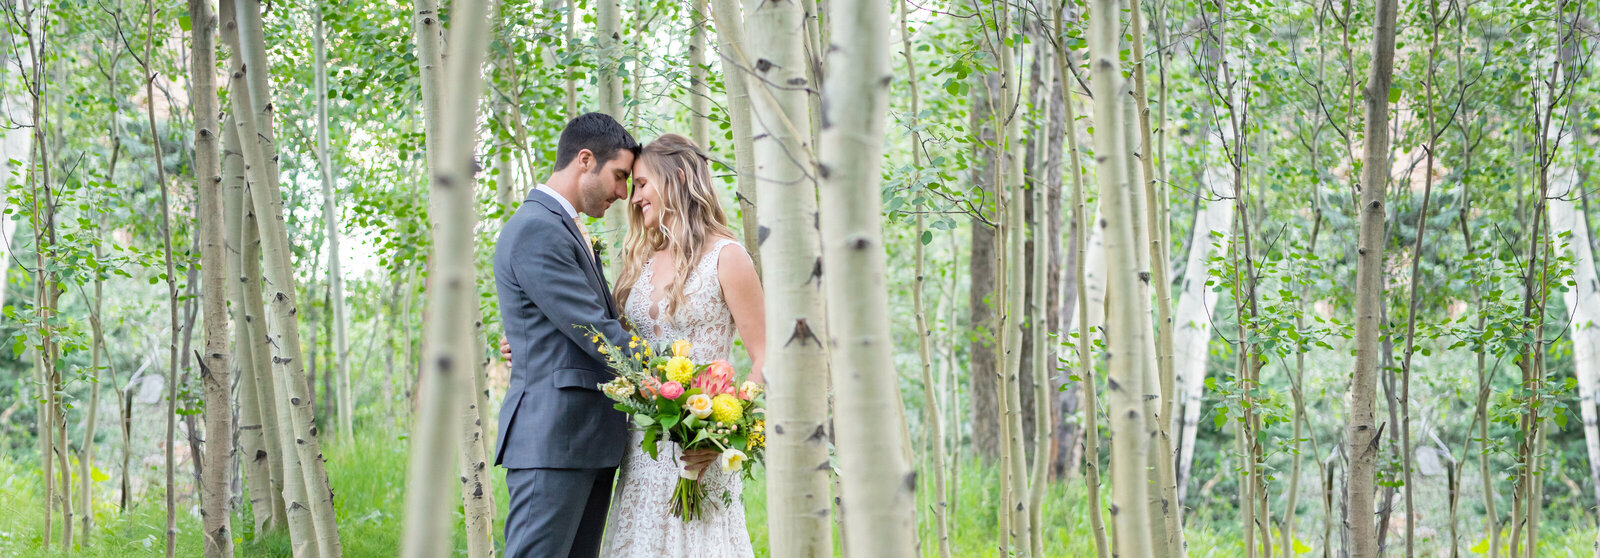 rocky-mountain-wedding-colorado